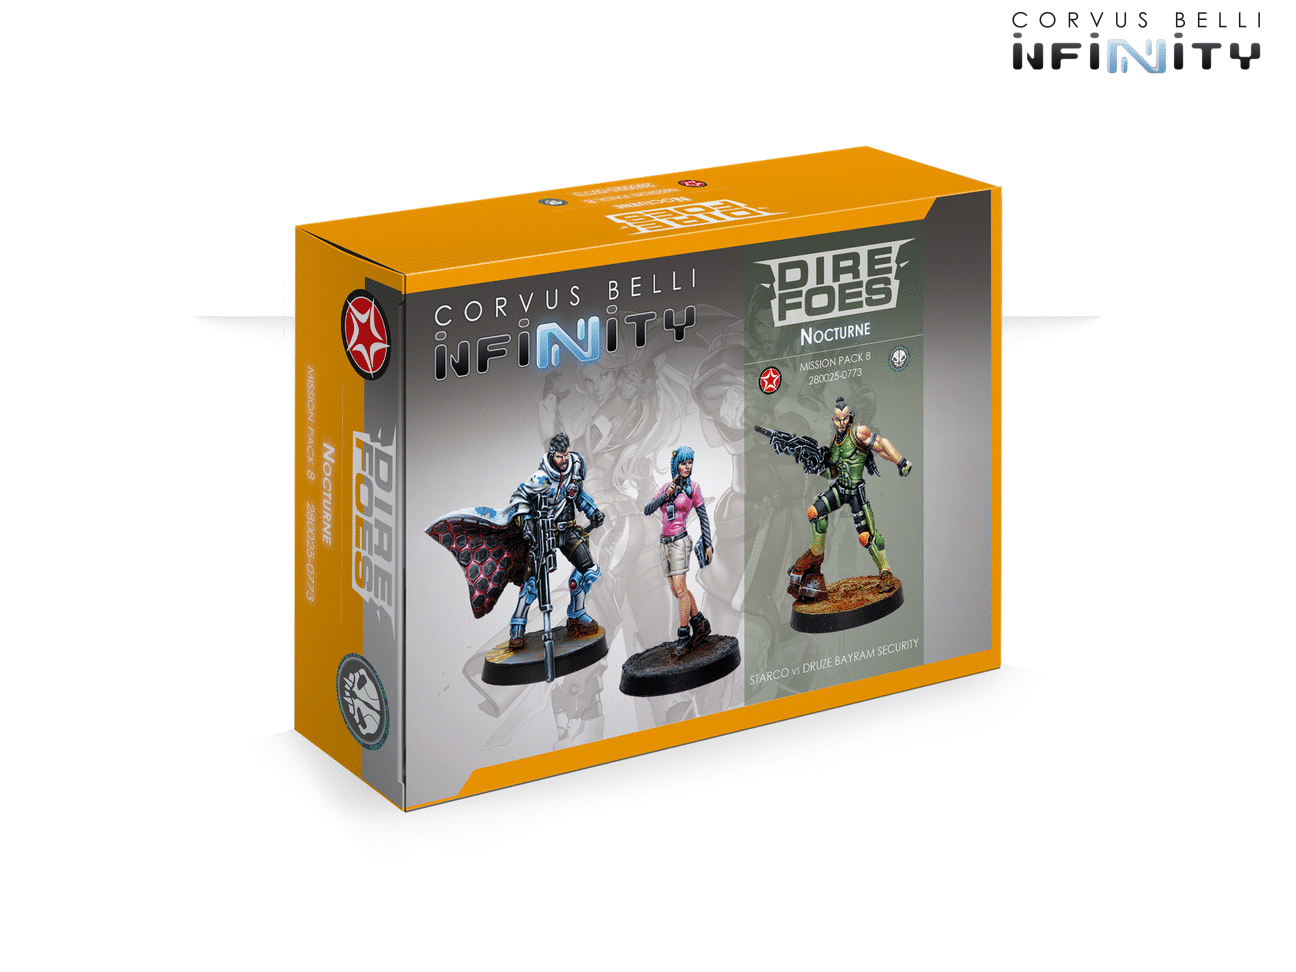 INF - Mission pack 8 (Dire foes Nocturne)